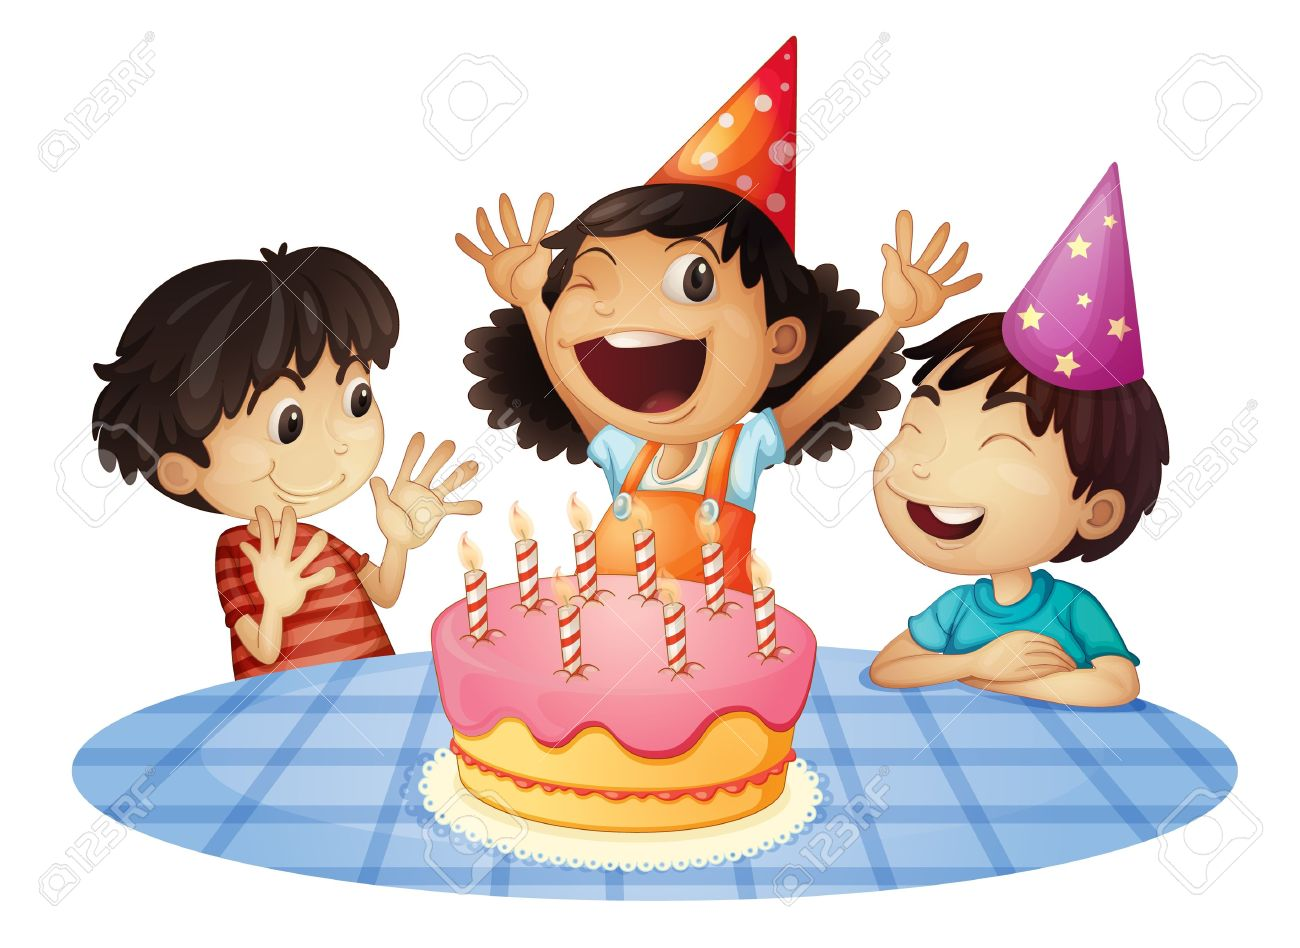 birthday kids clipart ; 13376891-young-kids-at-a-birthday-party